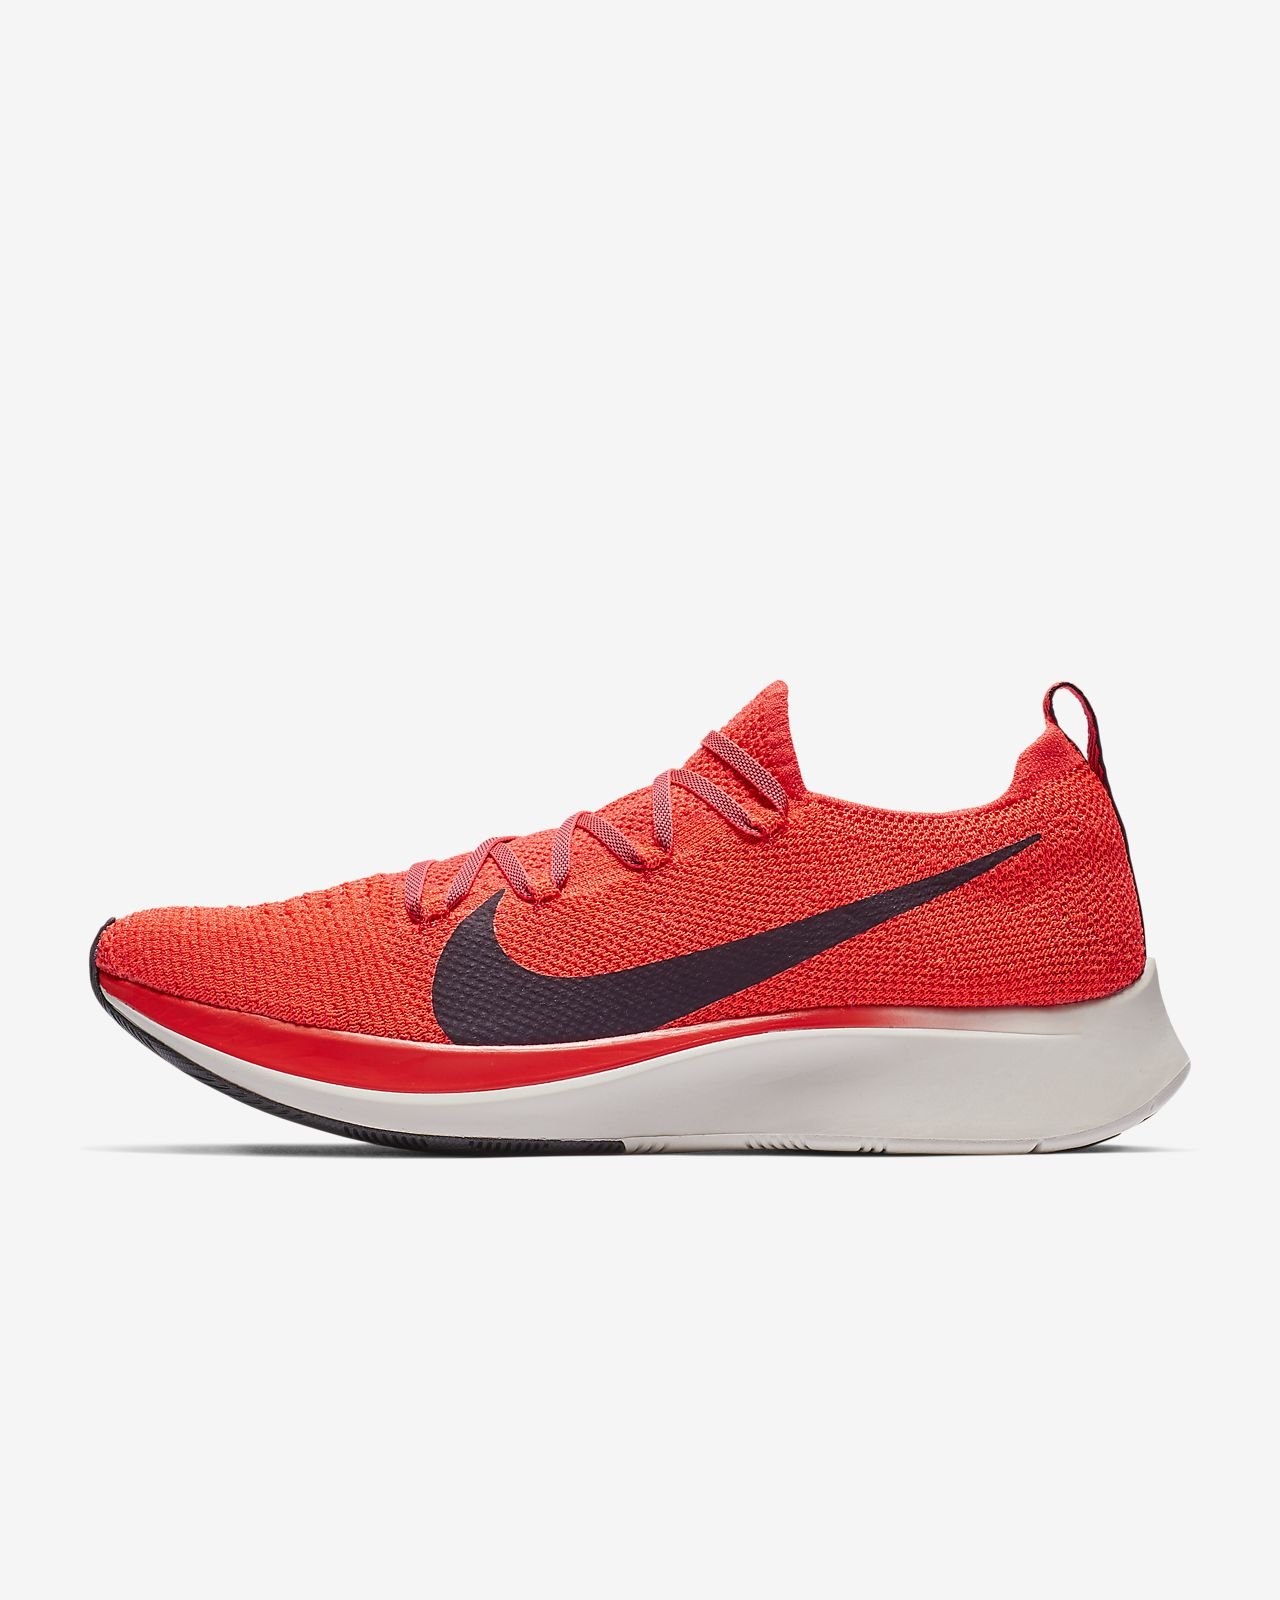 new product e43d5 ad33e Men s Running Shoe. Nike Zoom Fly Flyknit. 160 €